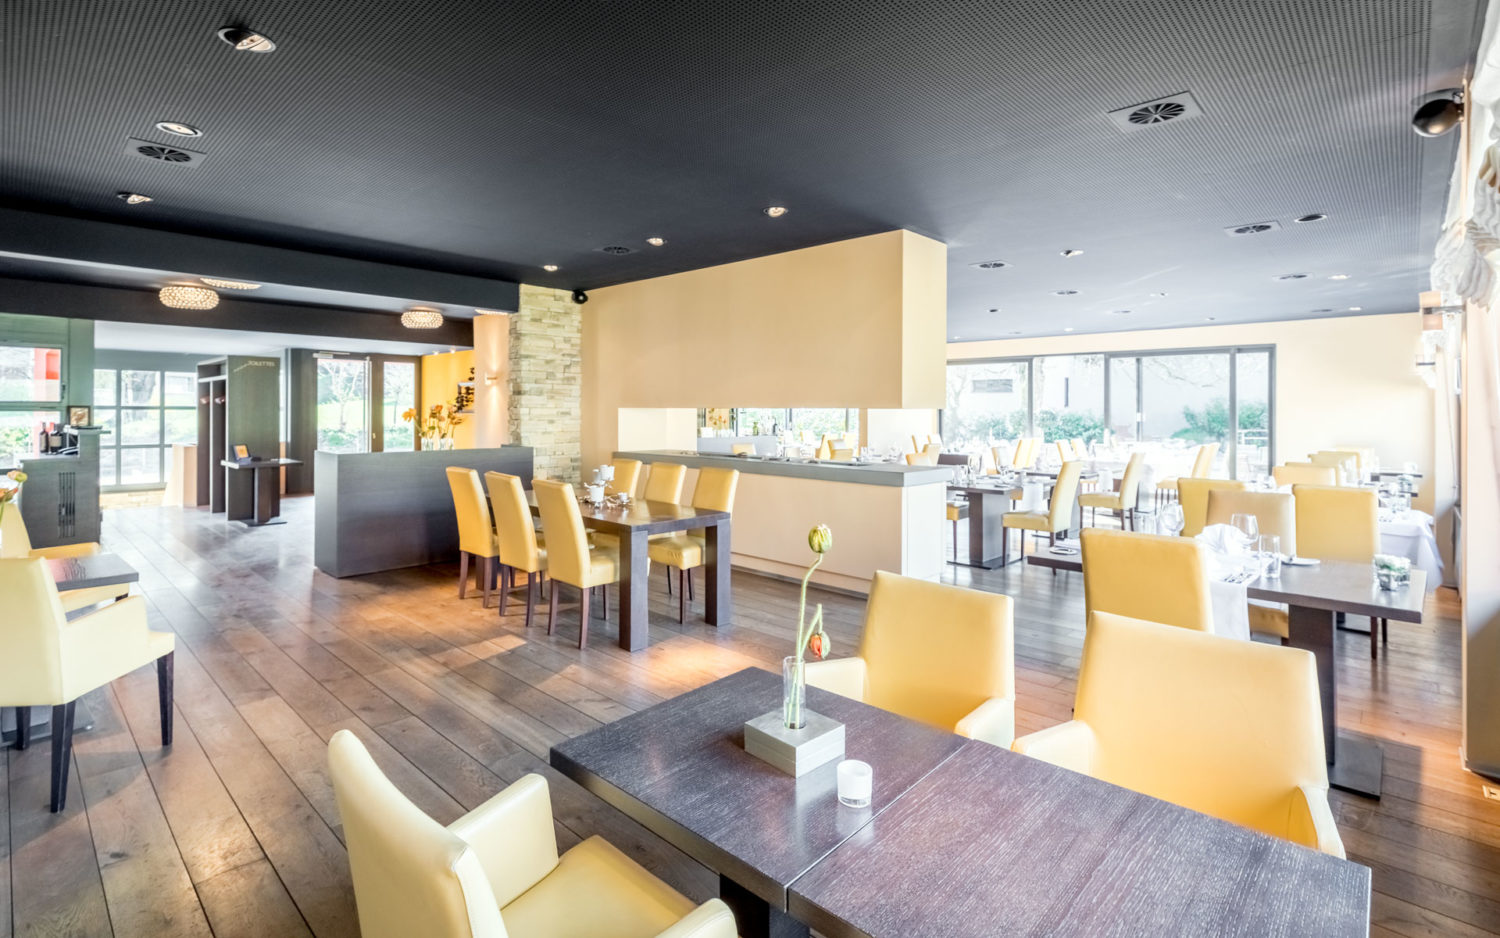 360° virtuelle Tour durch ein Restaurant